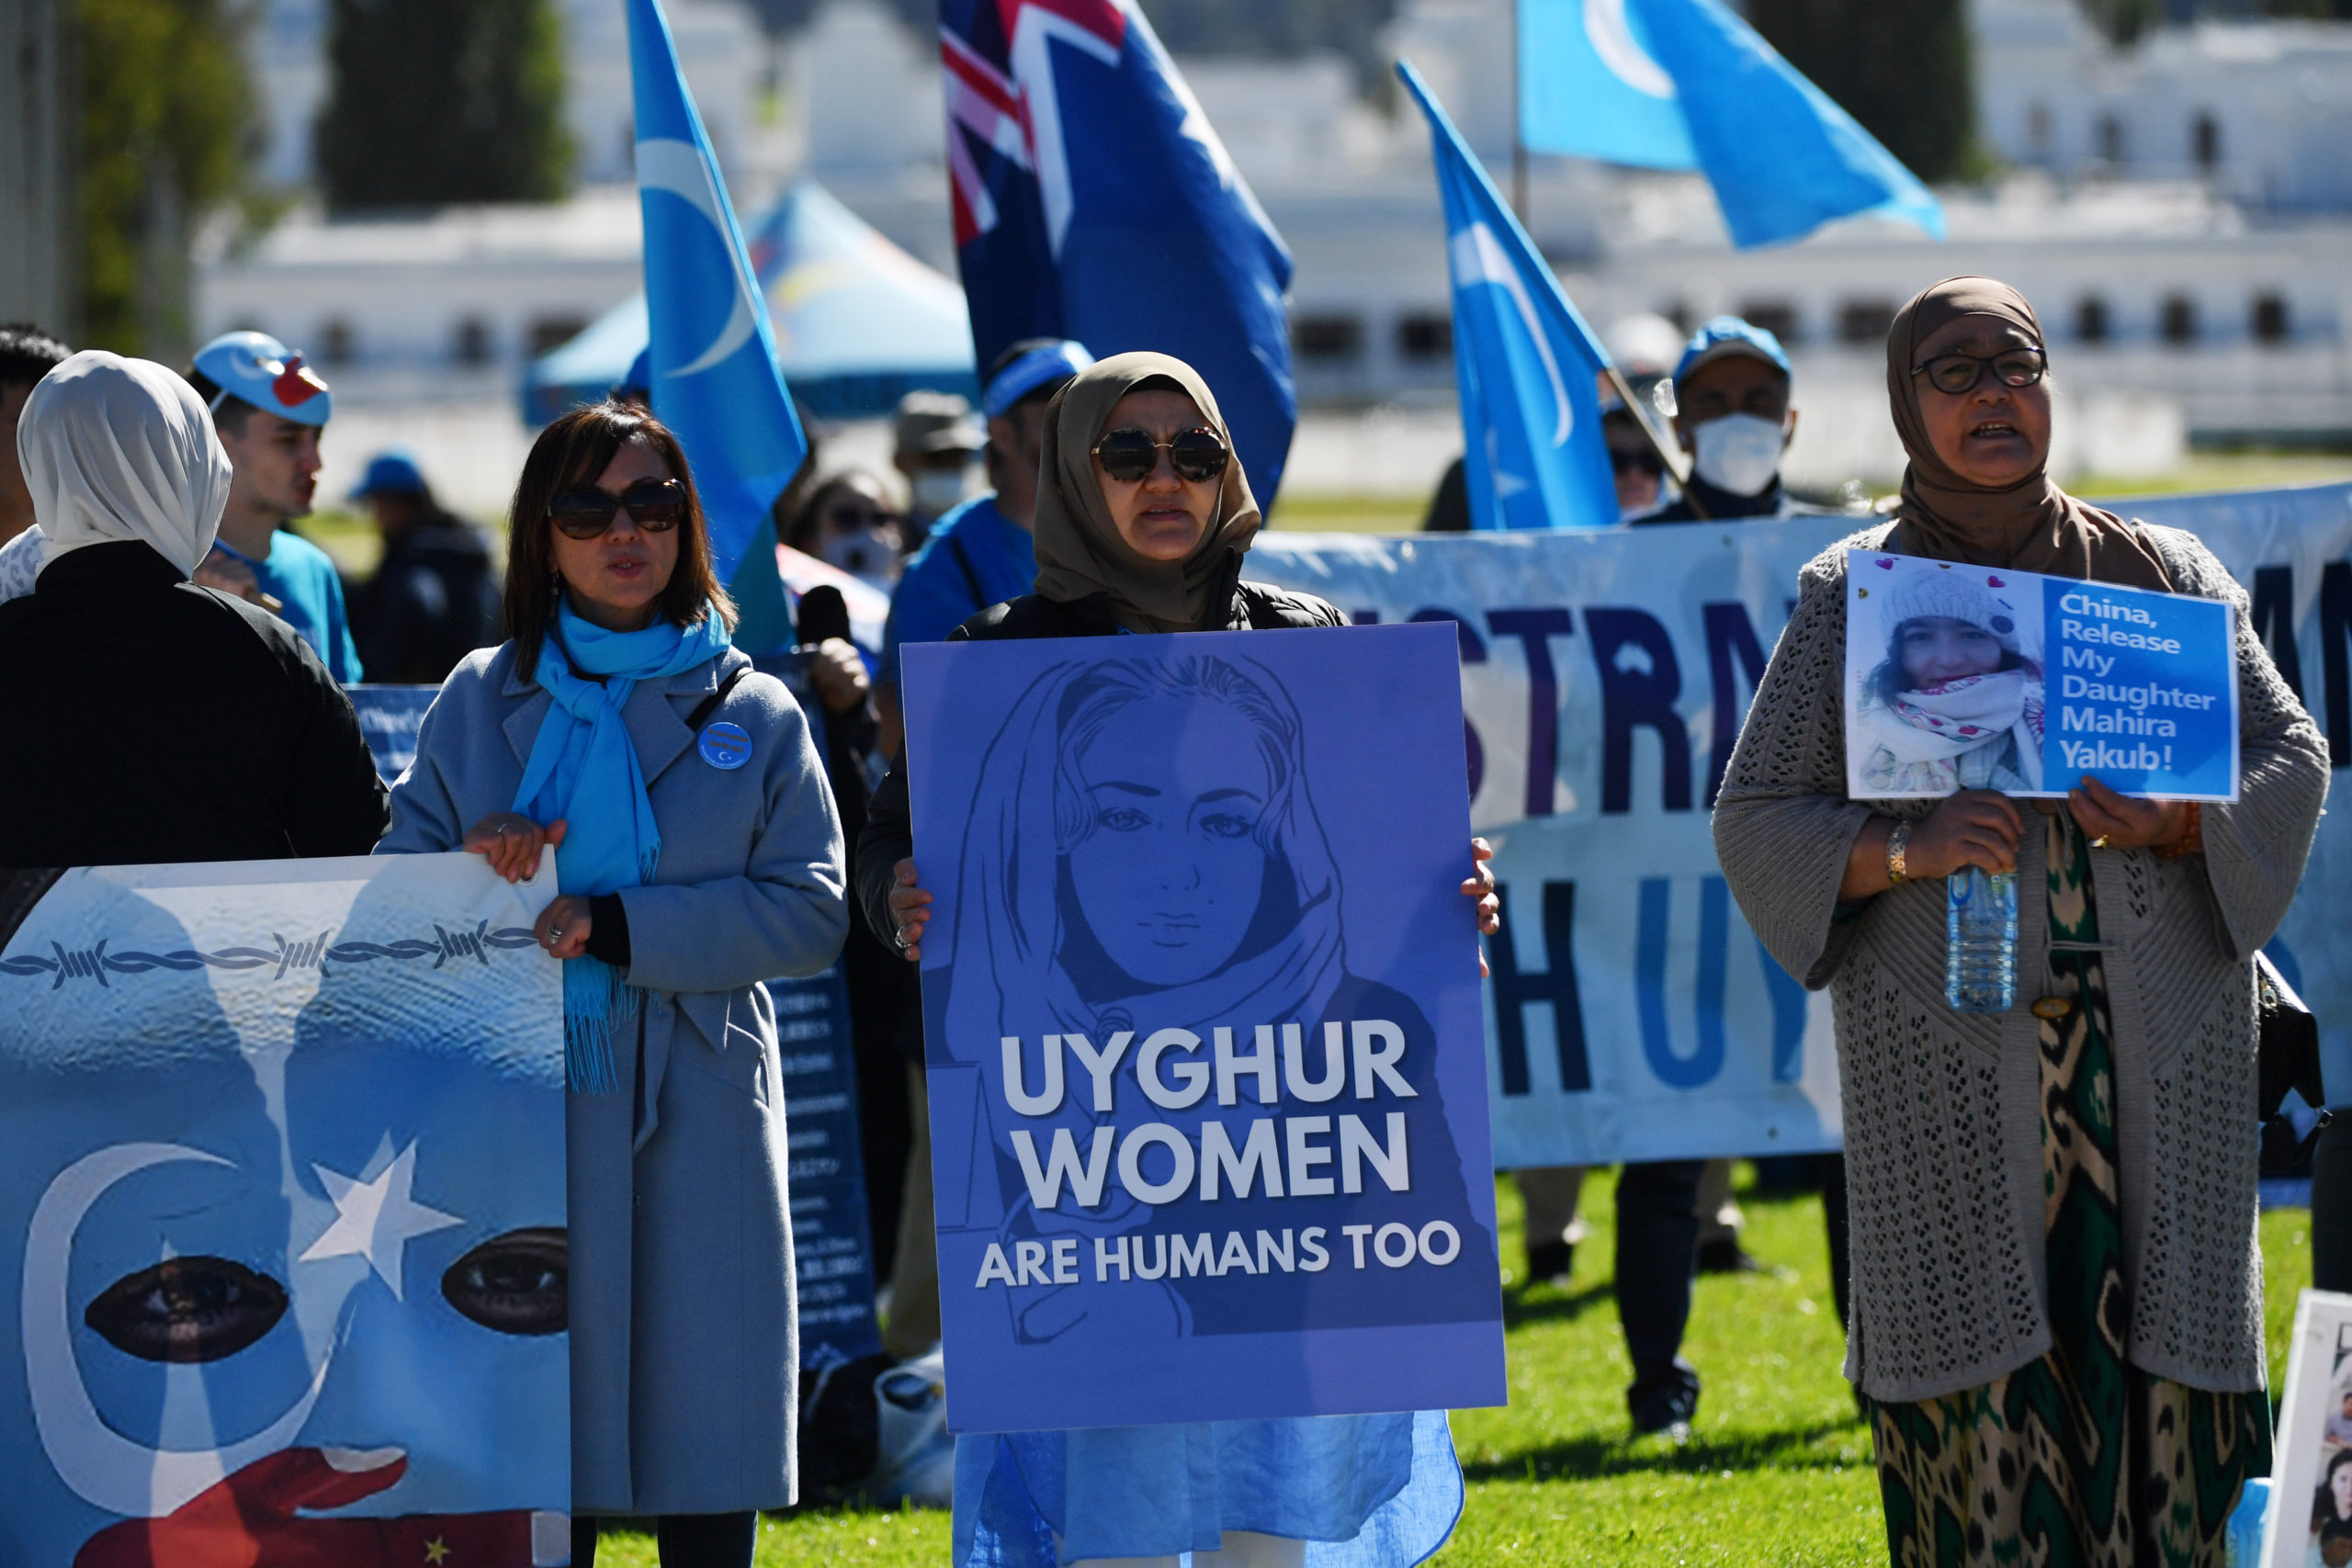 Protestors attend a rally for the Uyghur community on March 15 in Australia. (Sam Mooy/Getty Images)